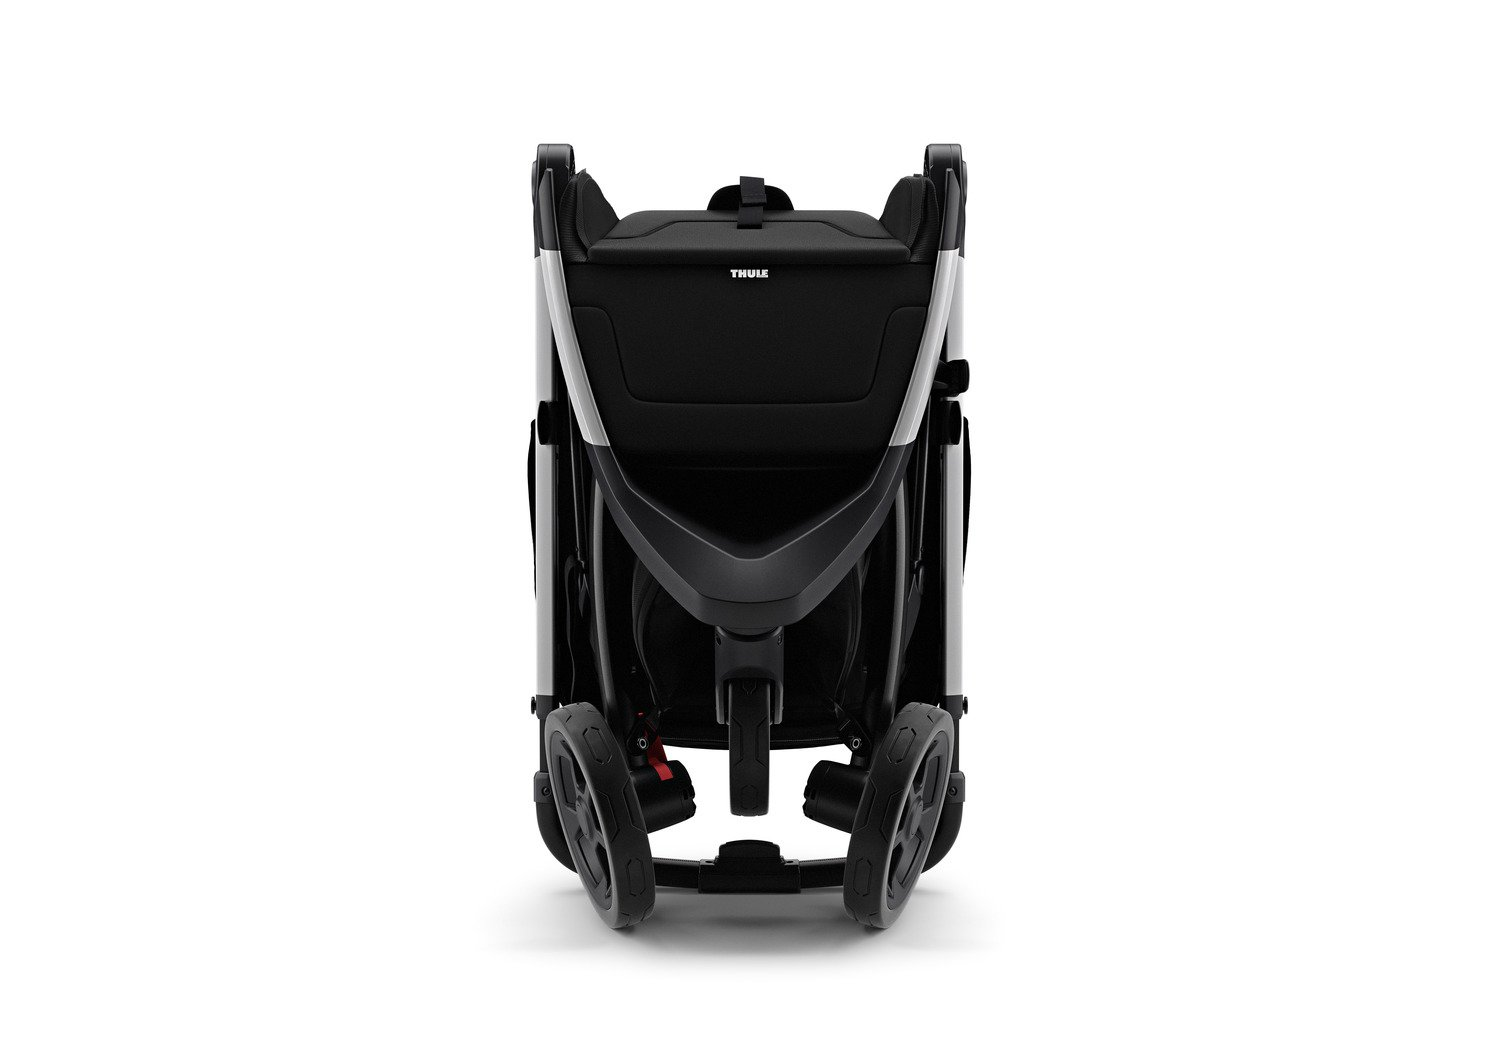 Wózek spacerowy Thule Spring Aluminium Shadow Grey